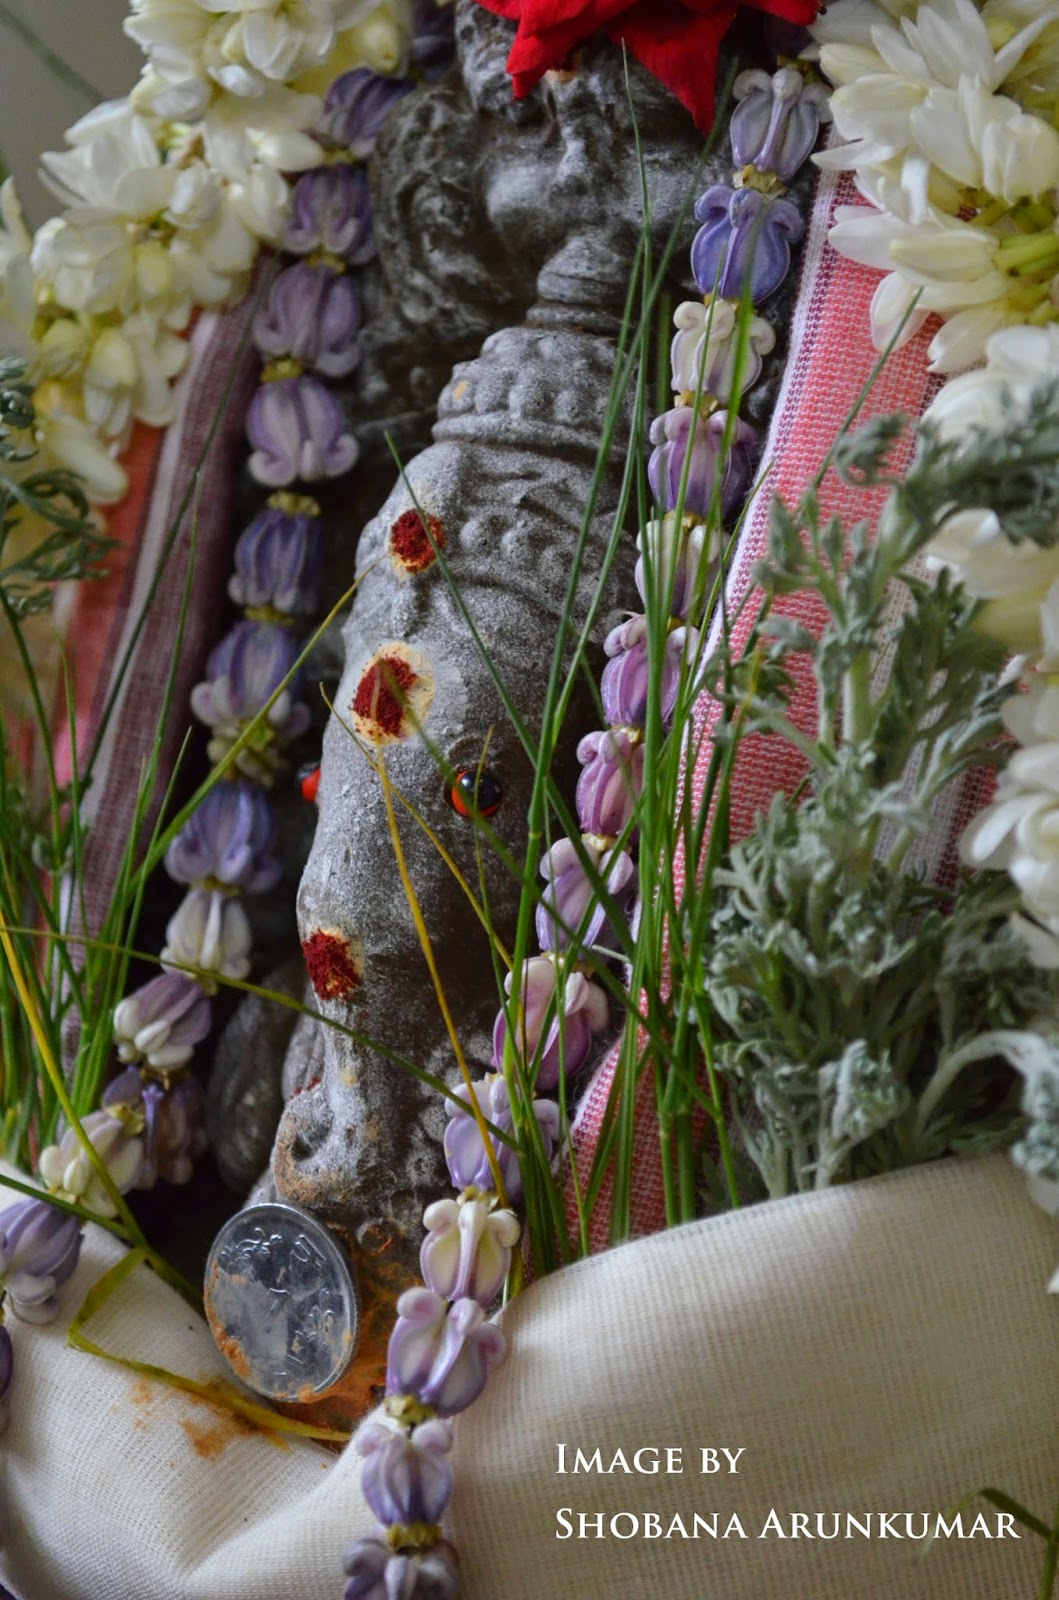 Ganesh chaturthi flowers may flower blog - Technically I Have Never Come Across Elai Kozhukattai There Is Ela Ada Elai Adai With Is A Kerela Sweet Make In The Same Say Which Has Chopped